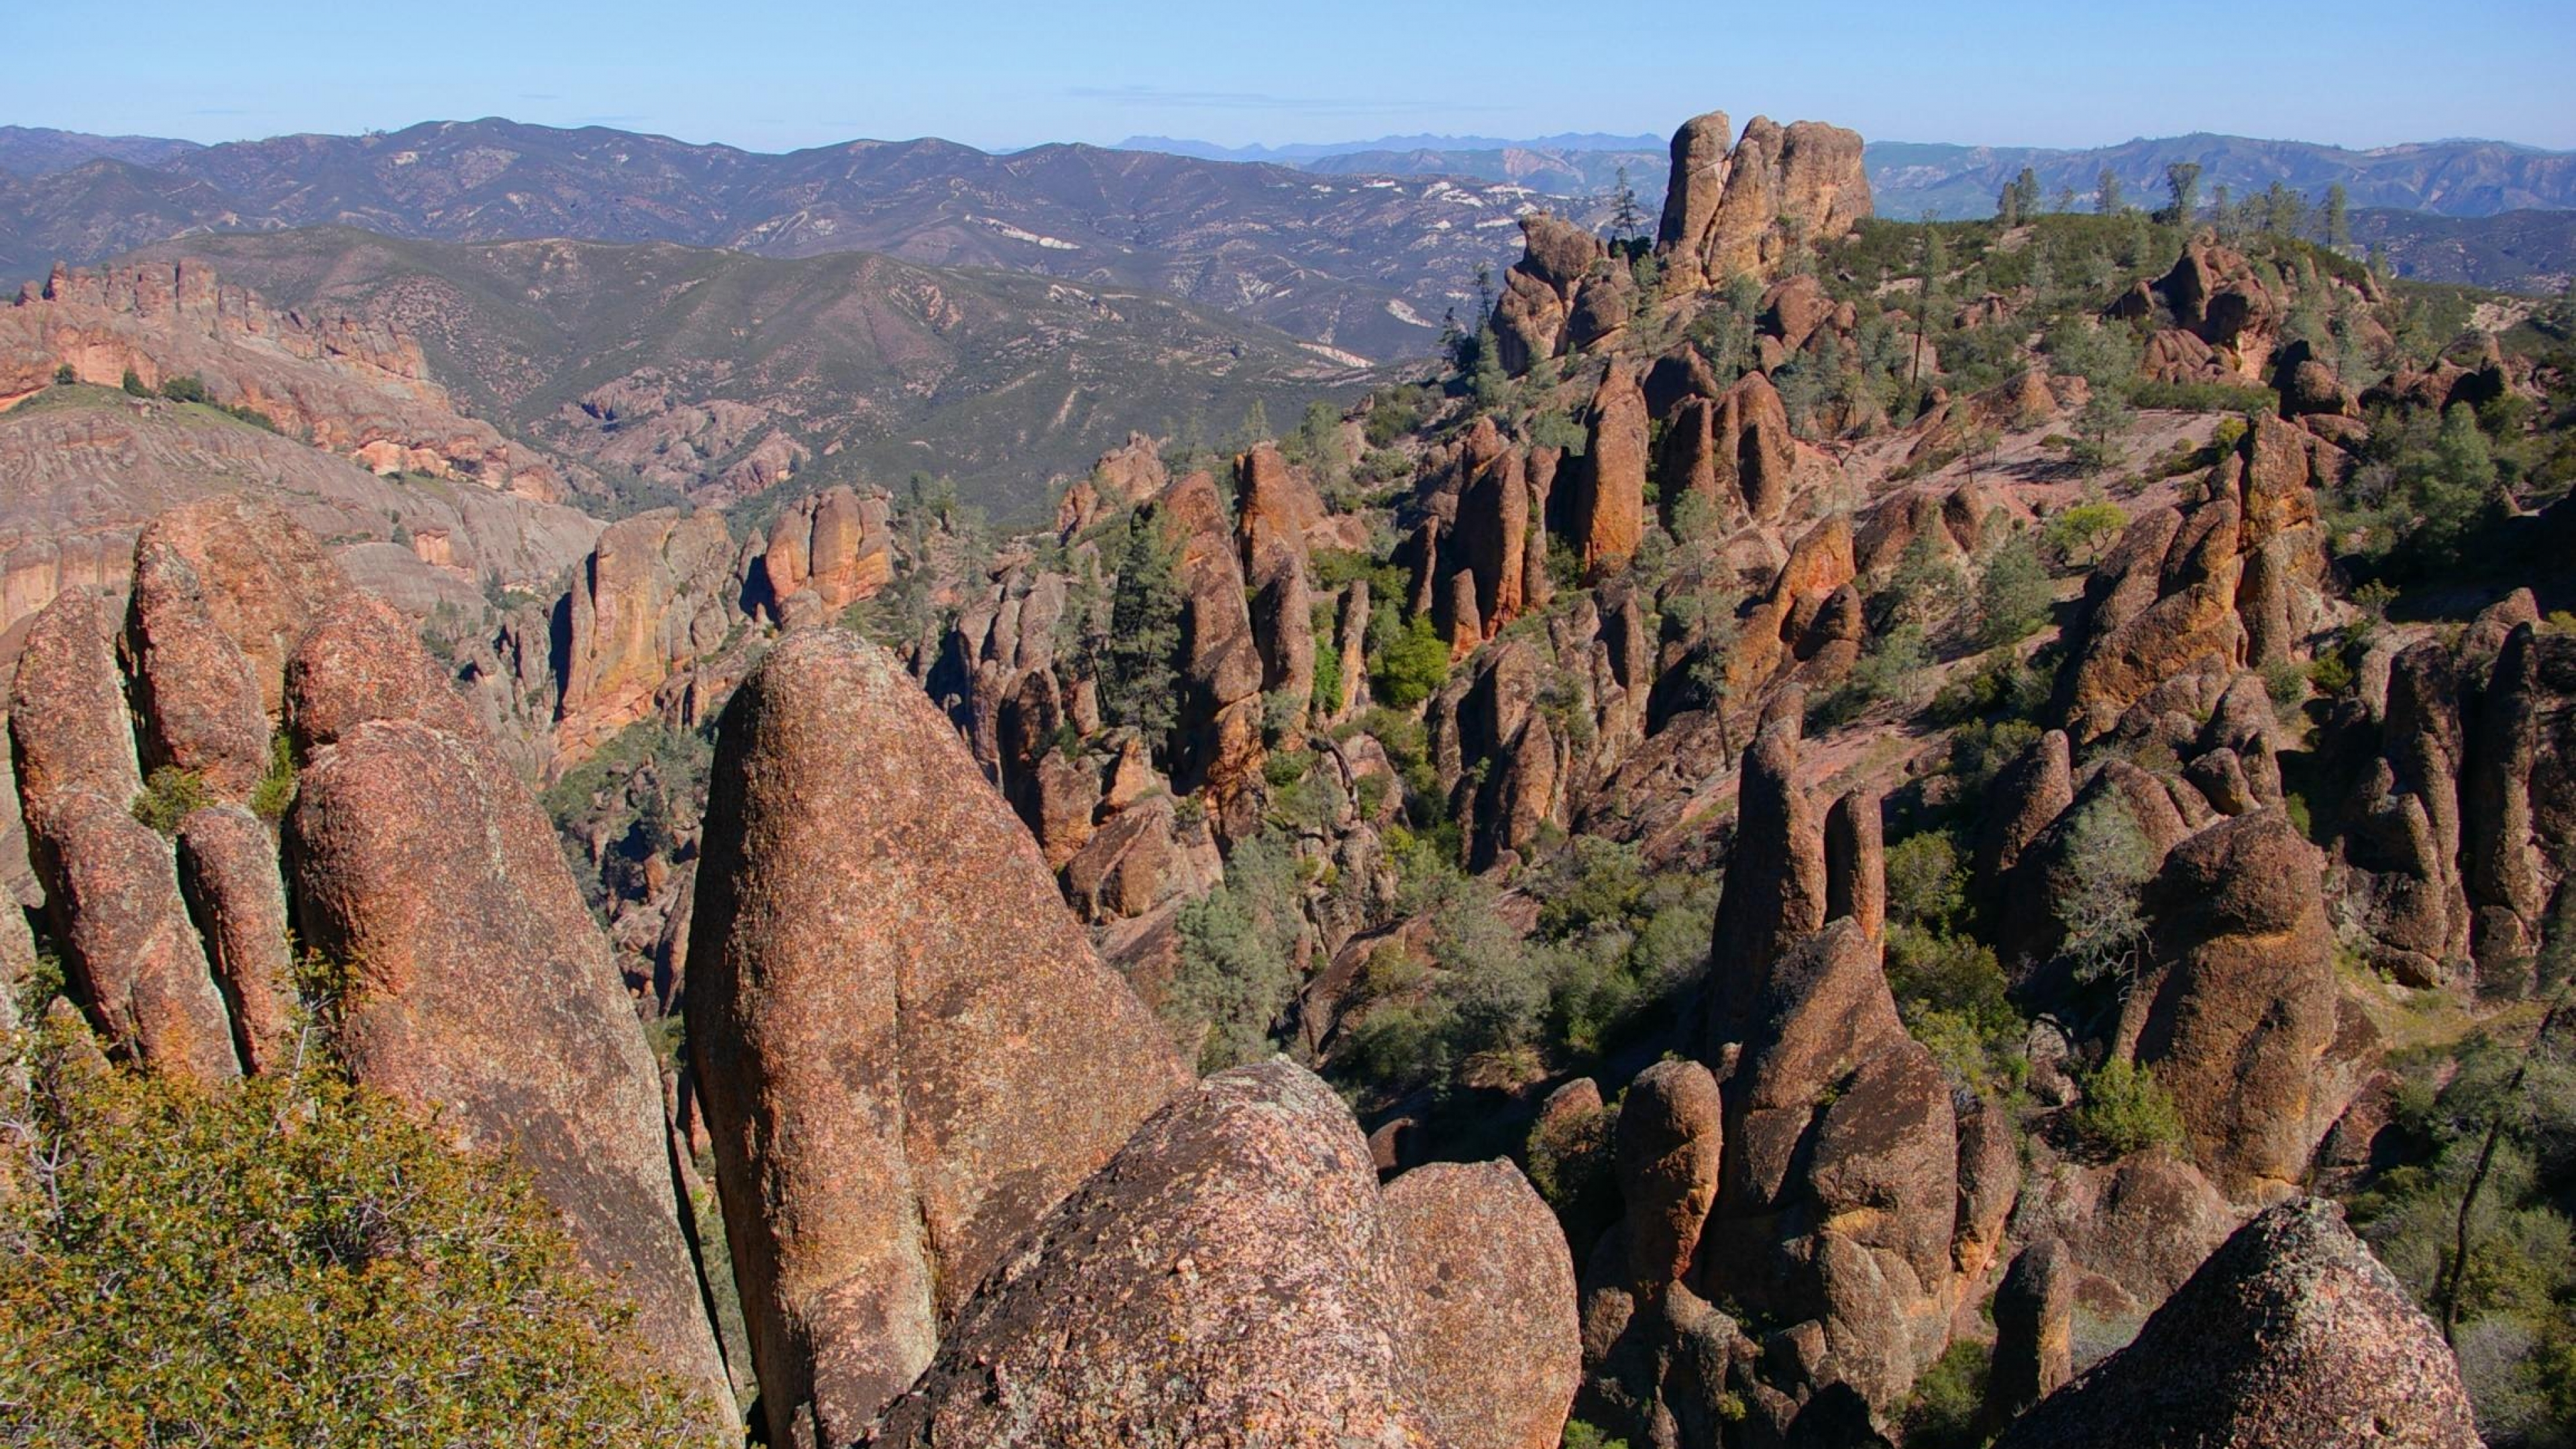 Rock structures across a sweeping view of Pinnacles National Park